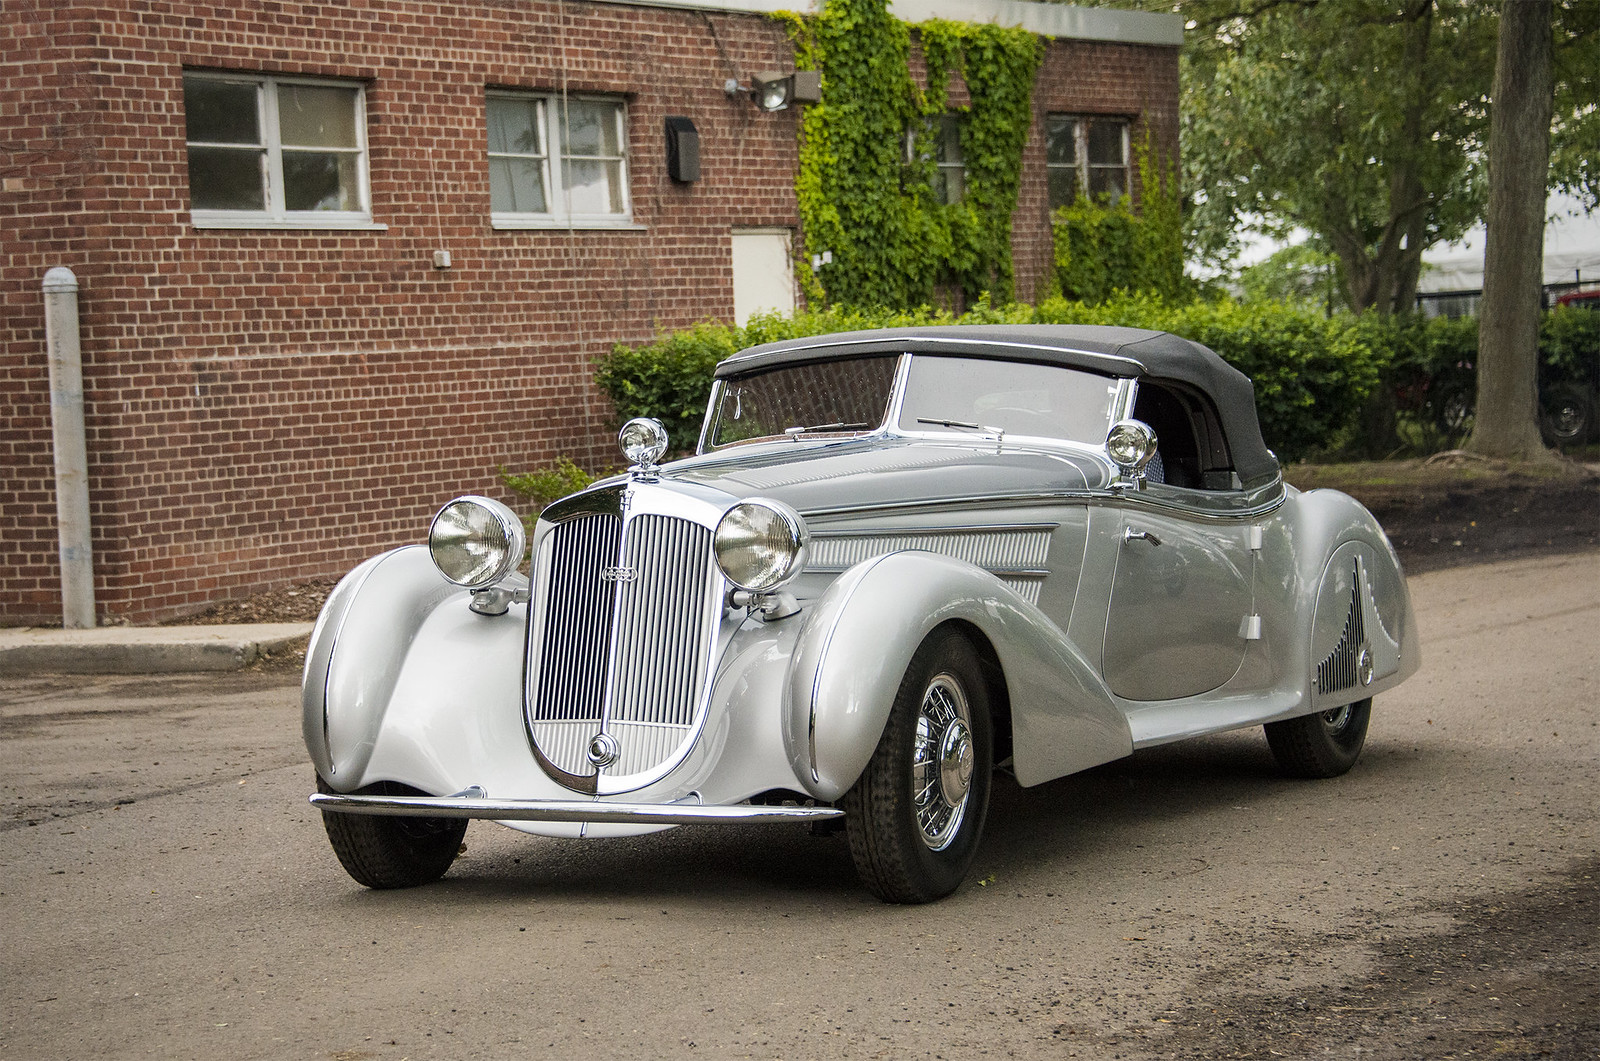 Rare Horch 855 Spezial Roadster Missing From Yanukovych